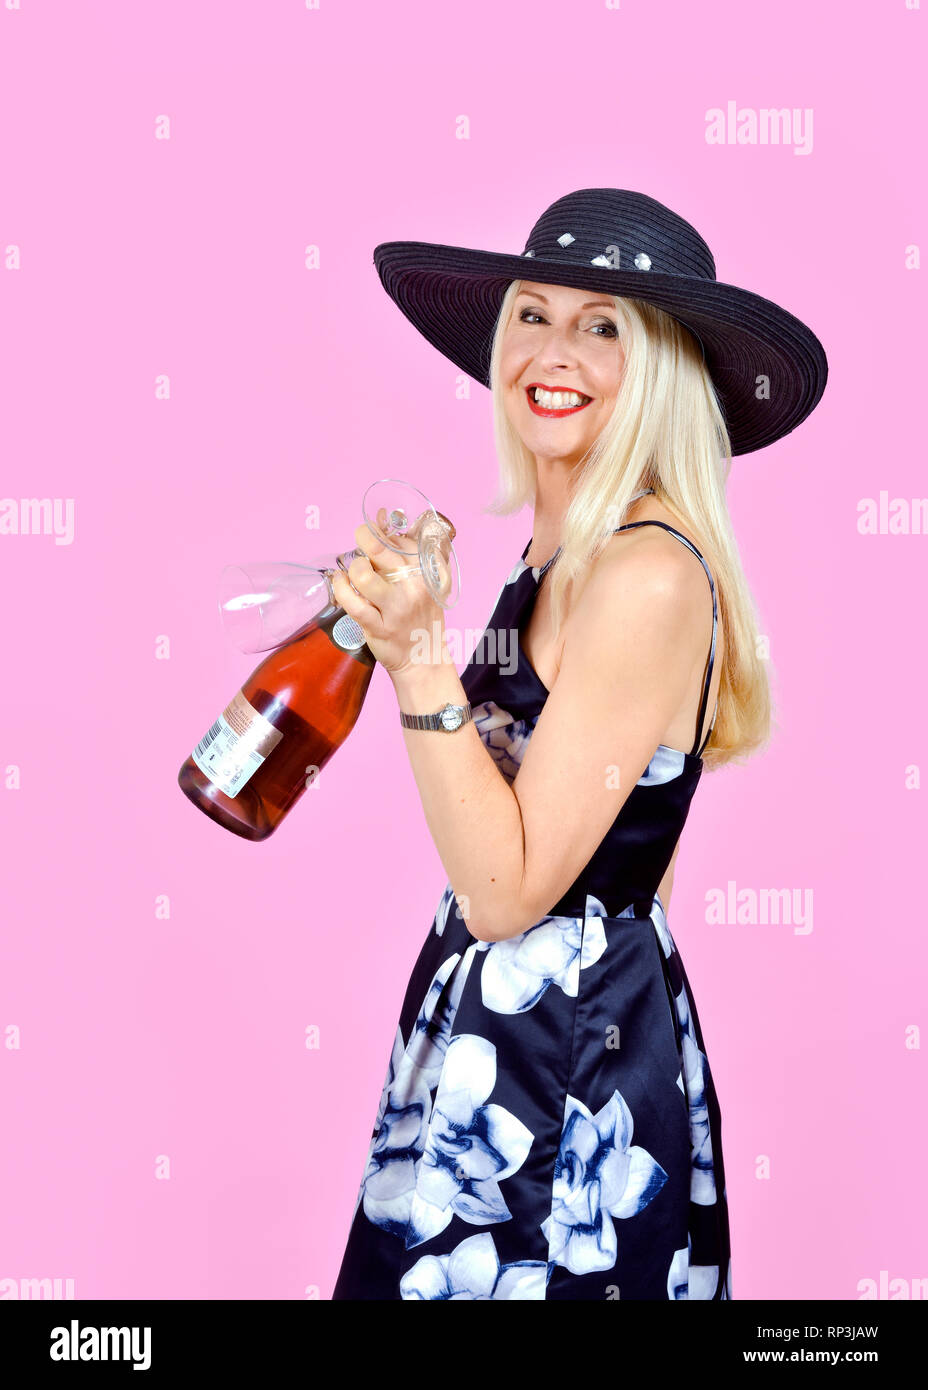 Happy, attractive blonde woman carrying a bottle of wine and a couple of wine glasses - Stock Image